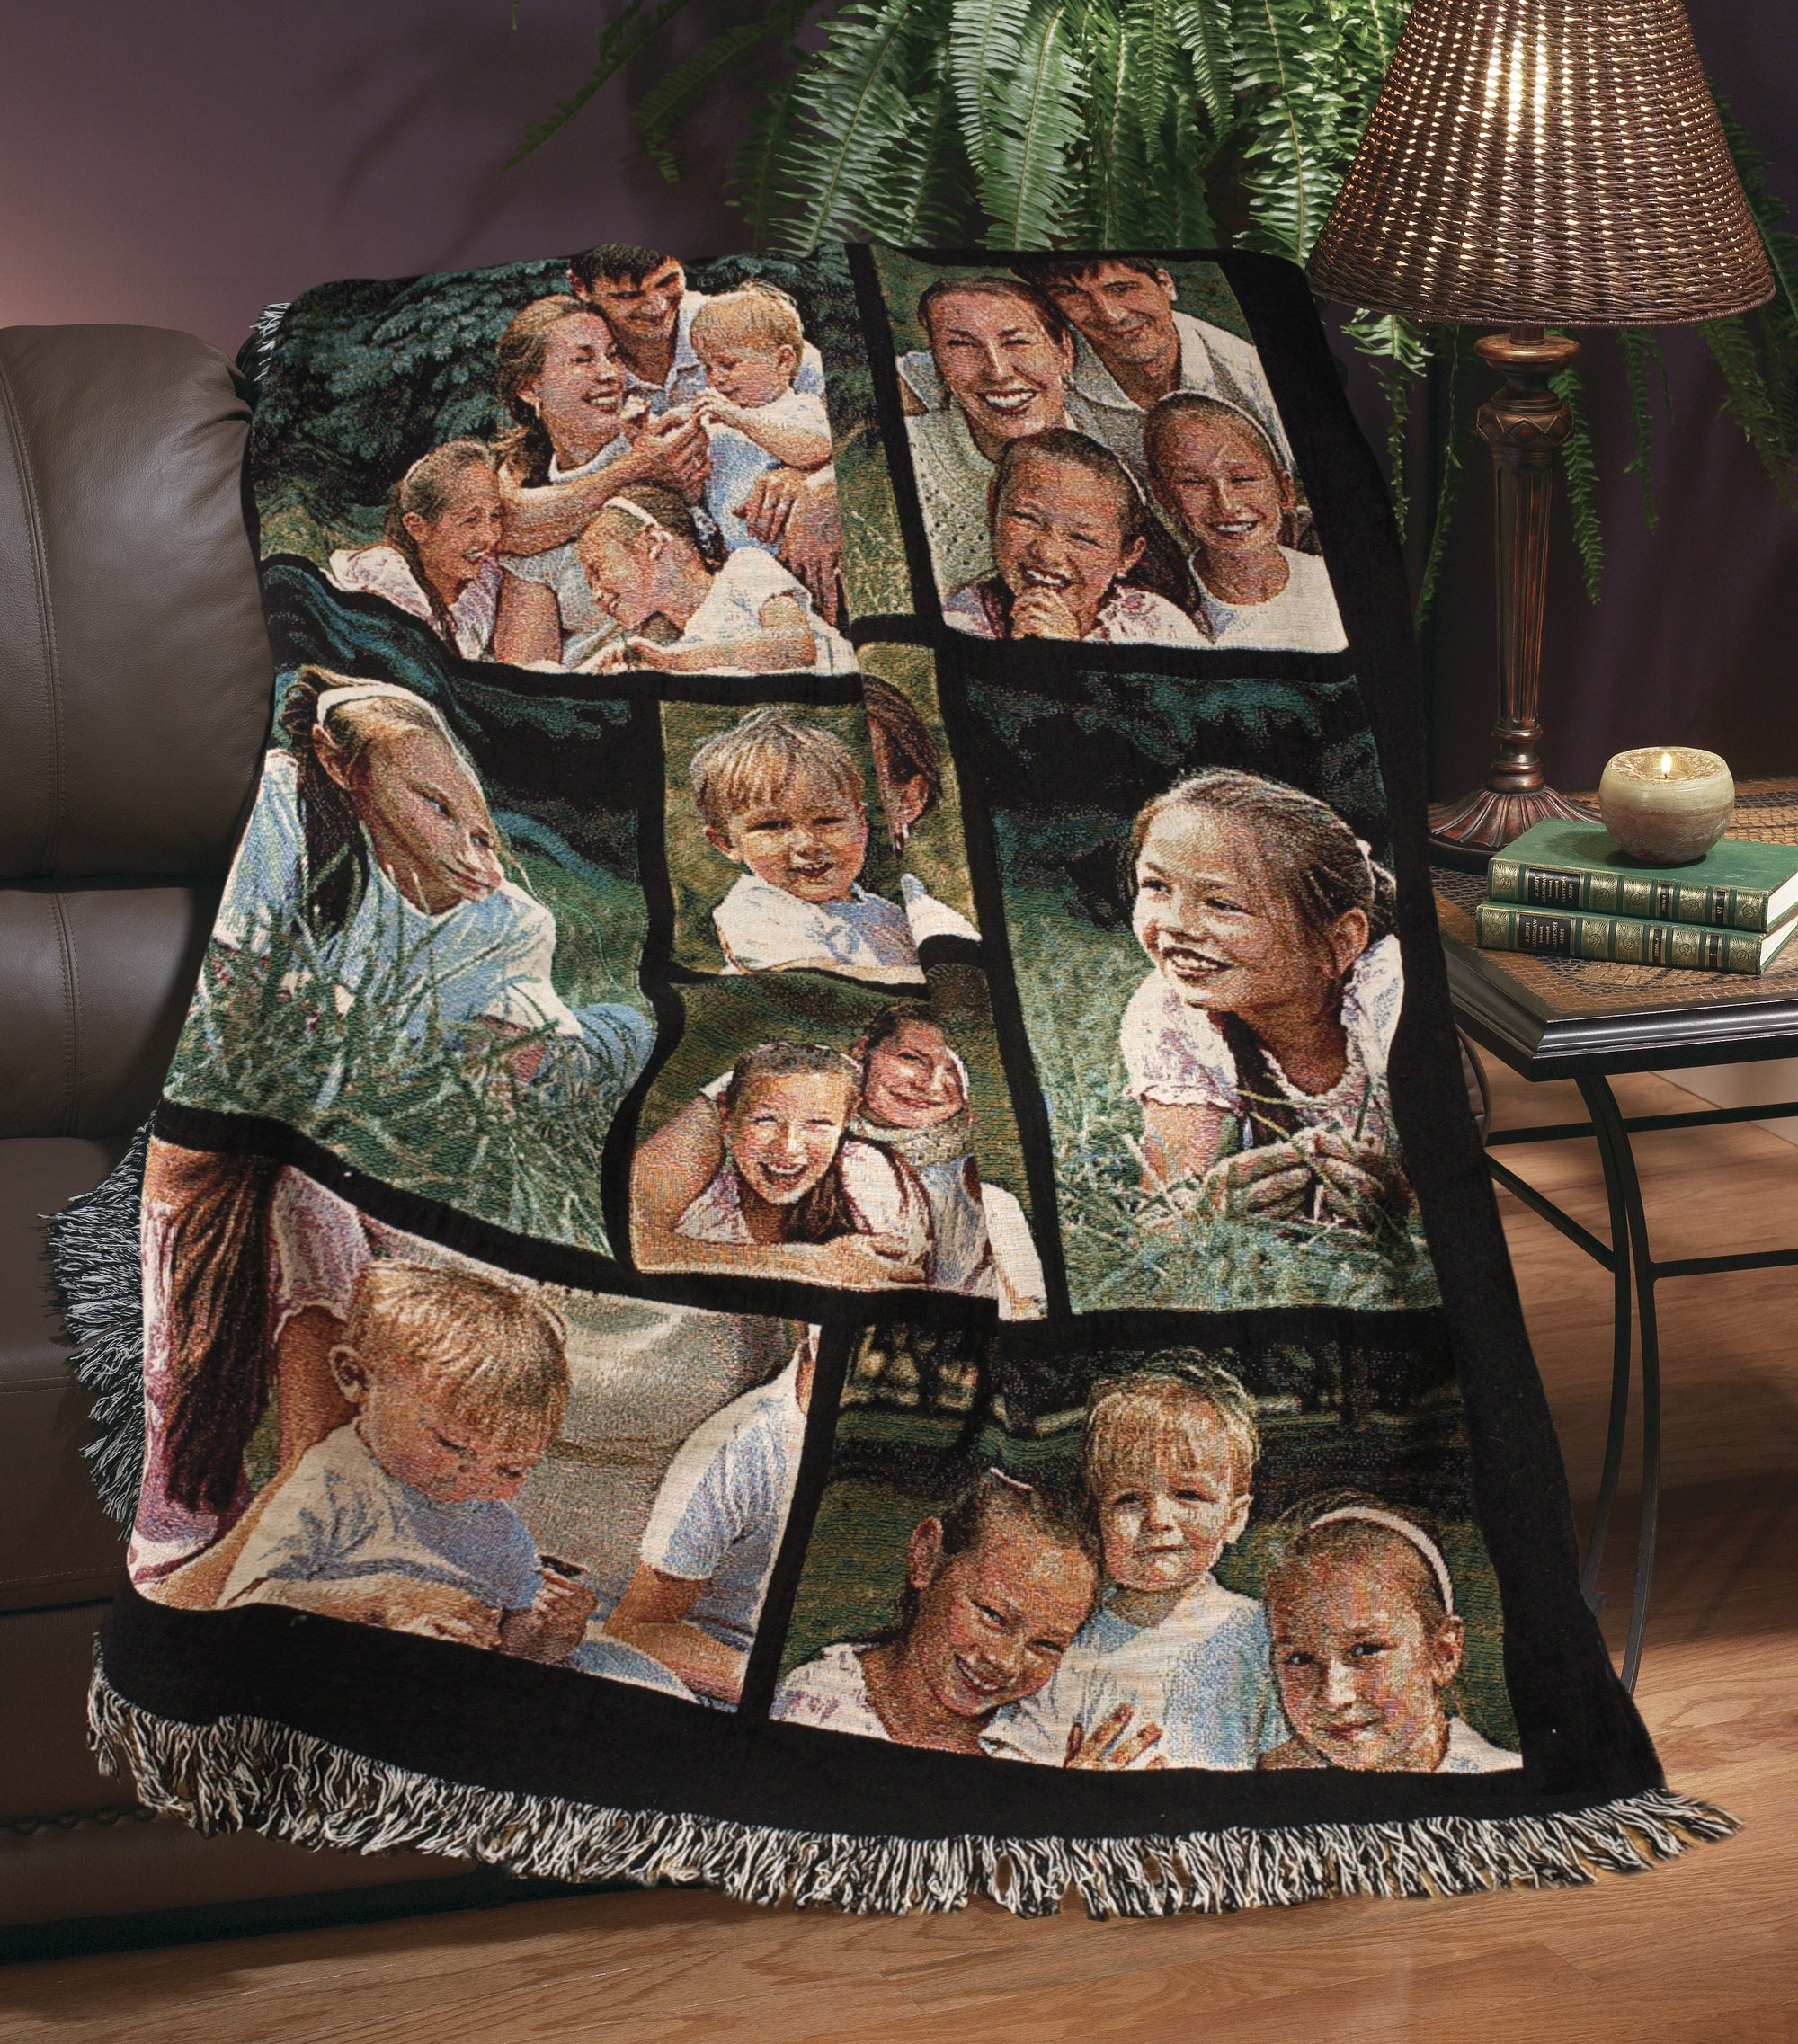 "Jacquard Woven Full Service Collage Blanket - 50"" x 60"" (Medium)"